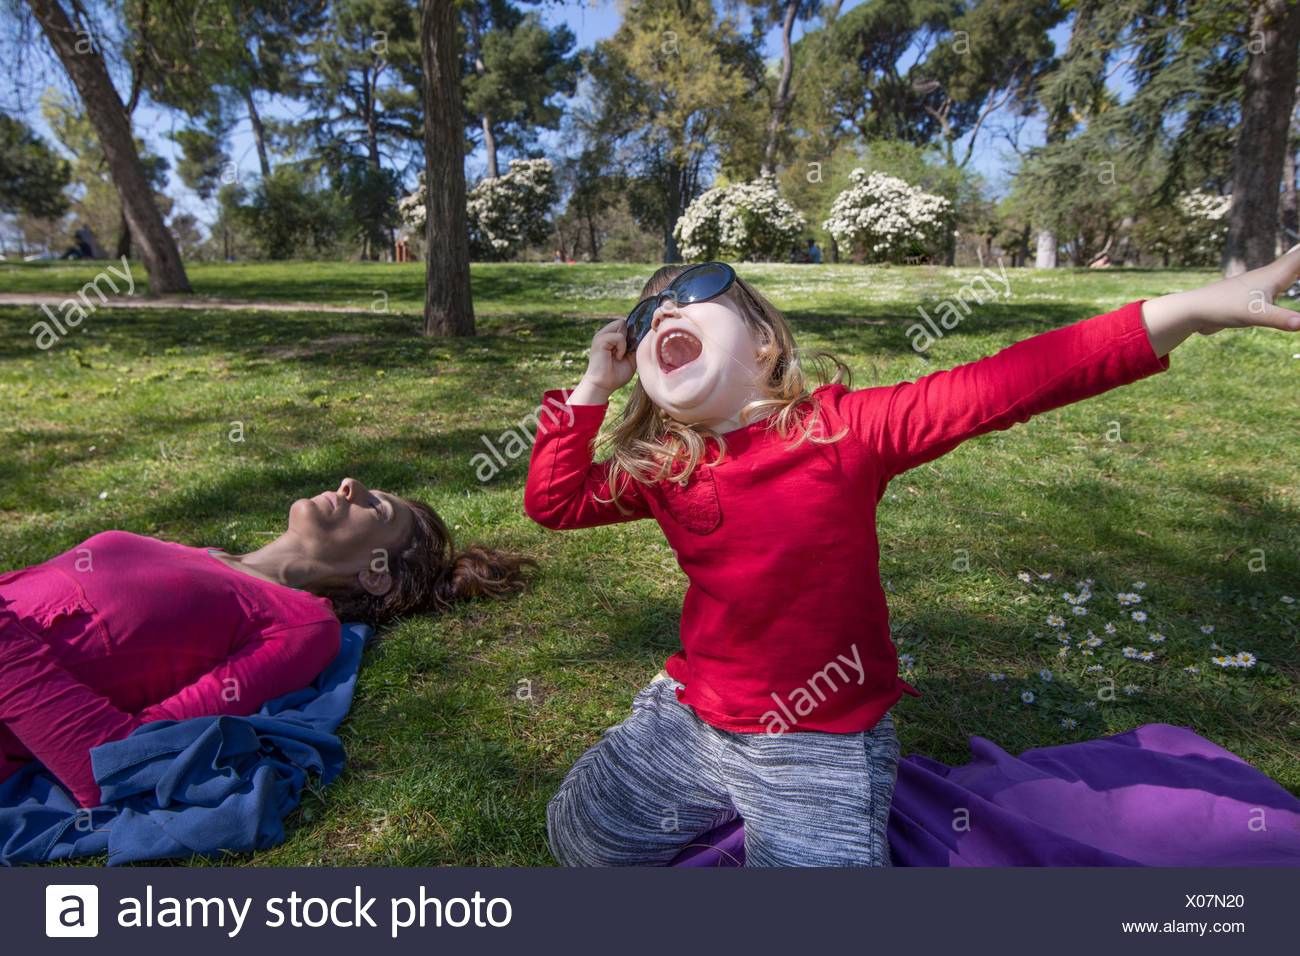 three years old blonde child, with red shirt, sitting on knees in green grass in park, next to mother sleeping, with big adult woman sunglasses - Stock Image